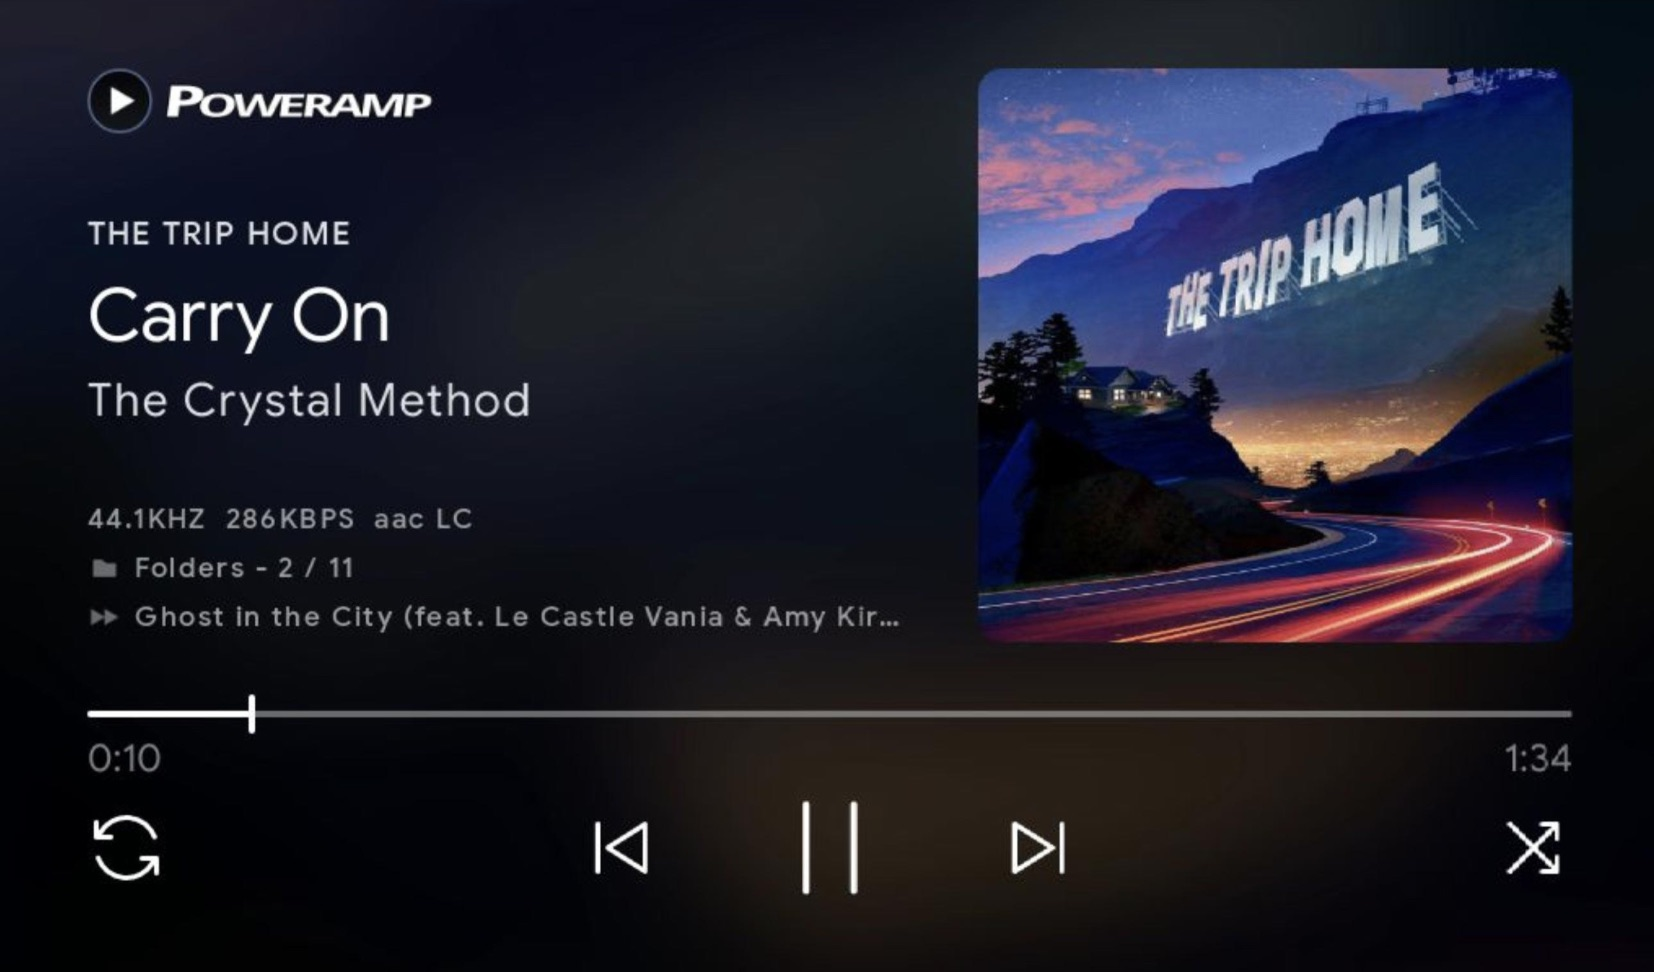 Poweramp now has Chromecast, Google Assistant support